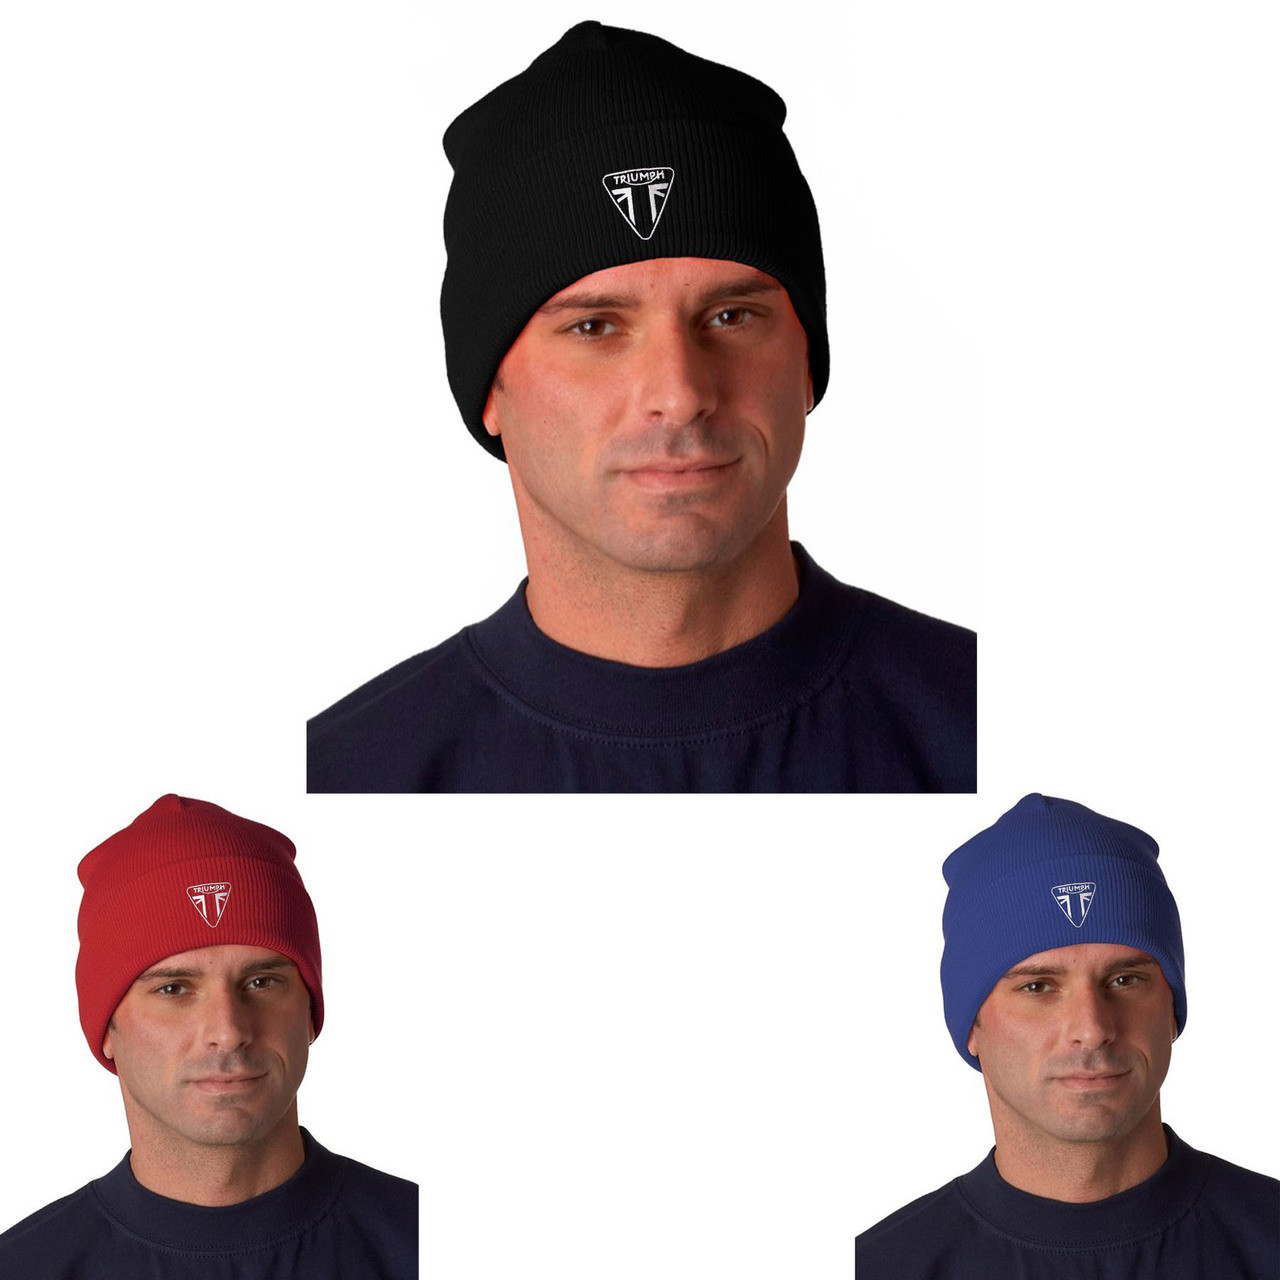 0ccfea9f7 Triumph Motorcycle Logo Ver 1 Embroidered Knit Hat Beanie Cap